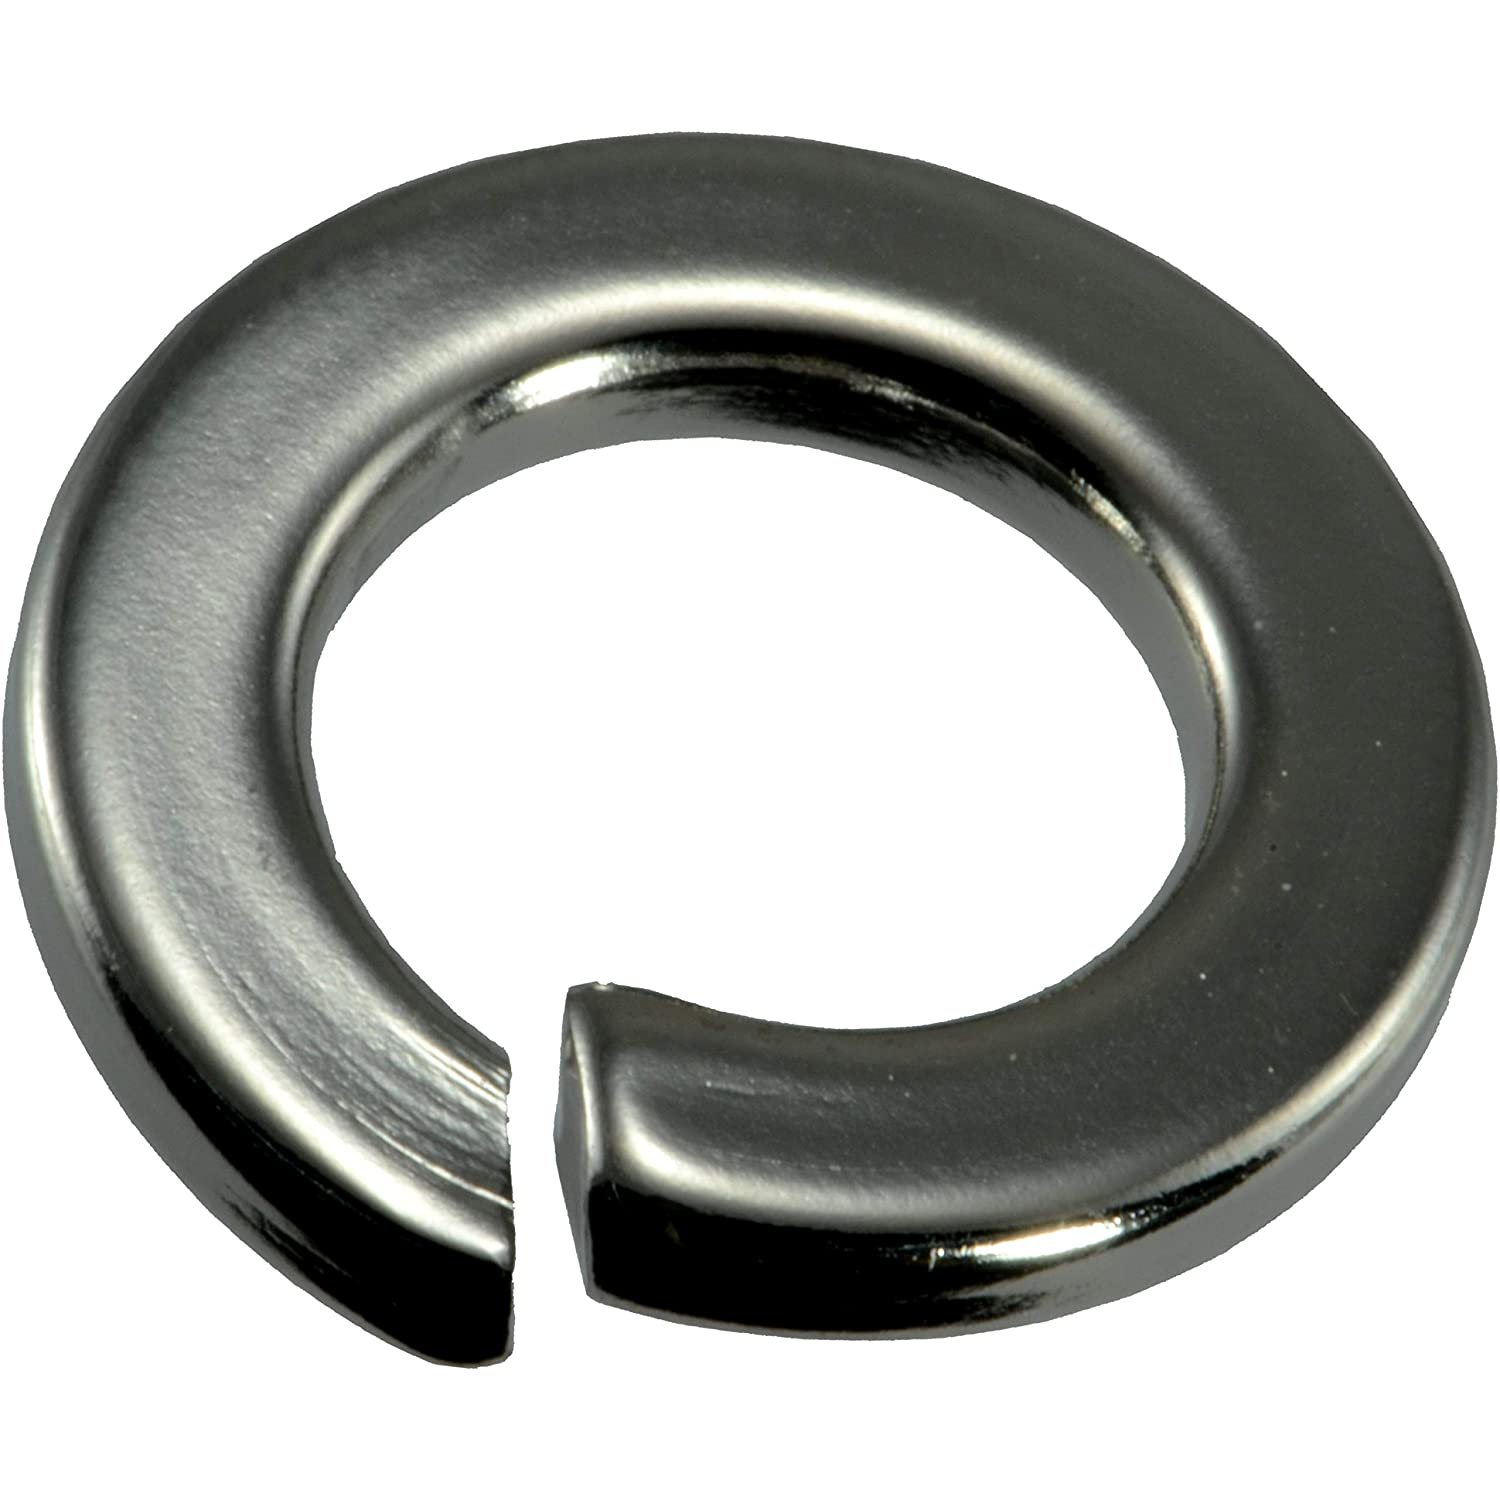 Hard-to-Find Fastener 014973442095 Lock Washers Piece-8 Midwest Fastener Corp 7//16